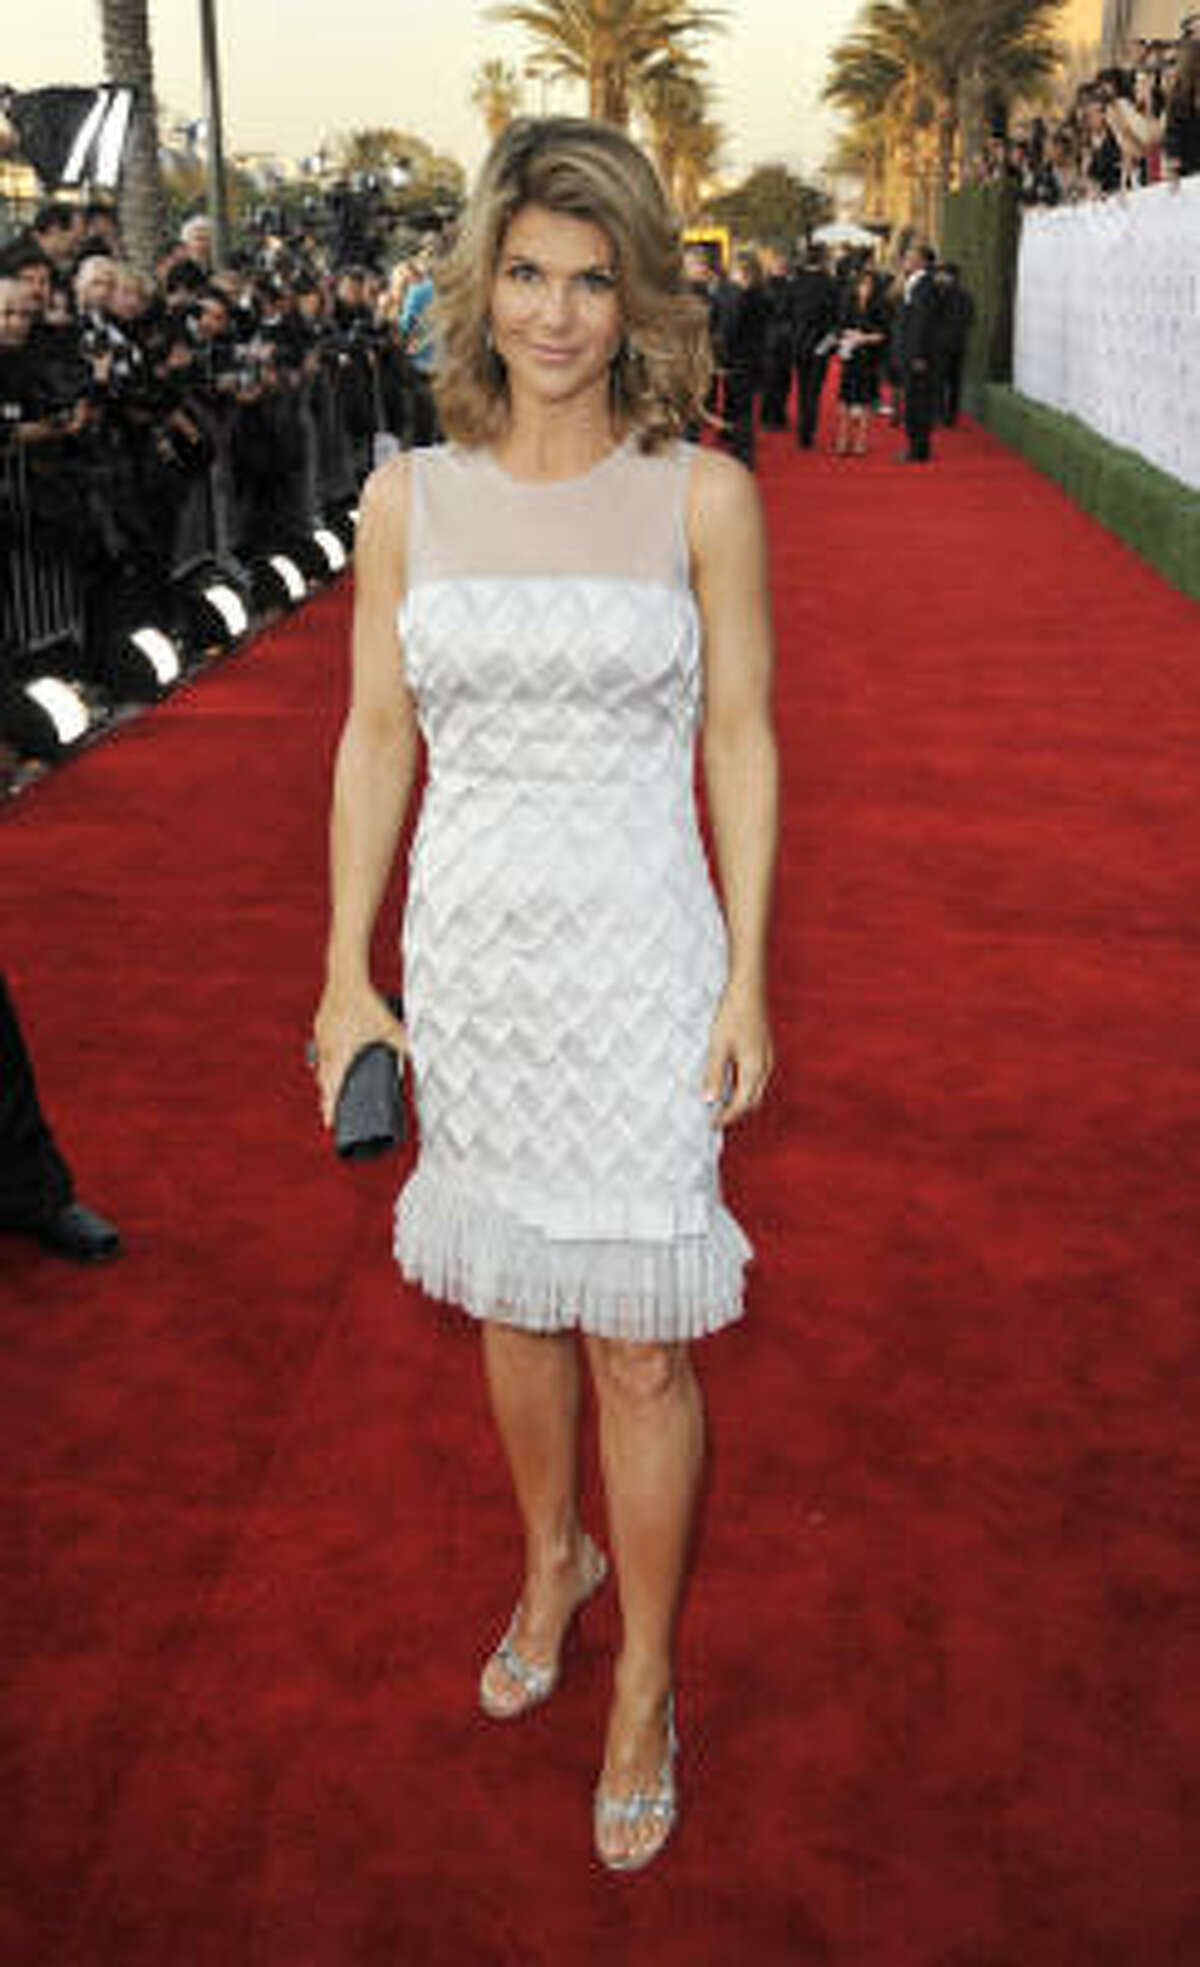 Actress Lori Loughlin arrives at the 35th Annual People's Choice Awards held at the Shrine Auditorium on Jan. 7, 2009 in Los Angeles.